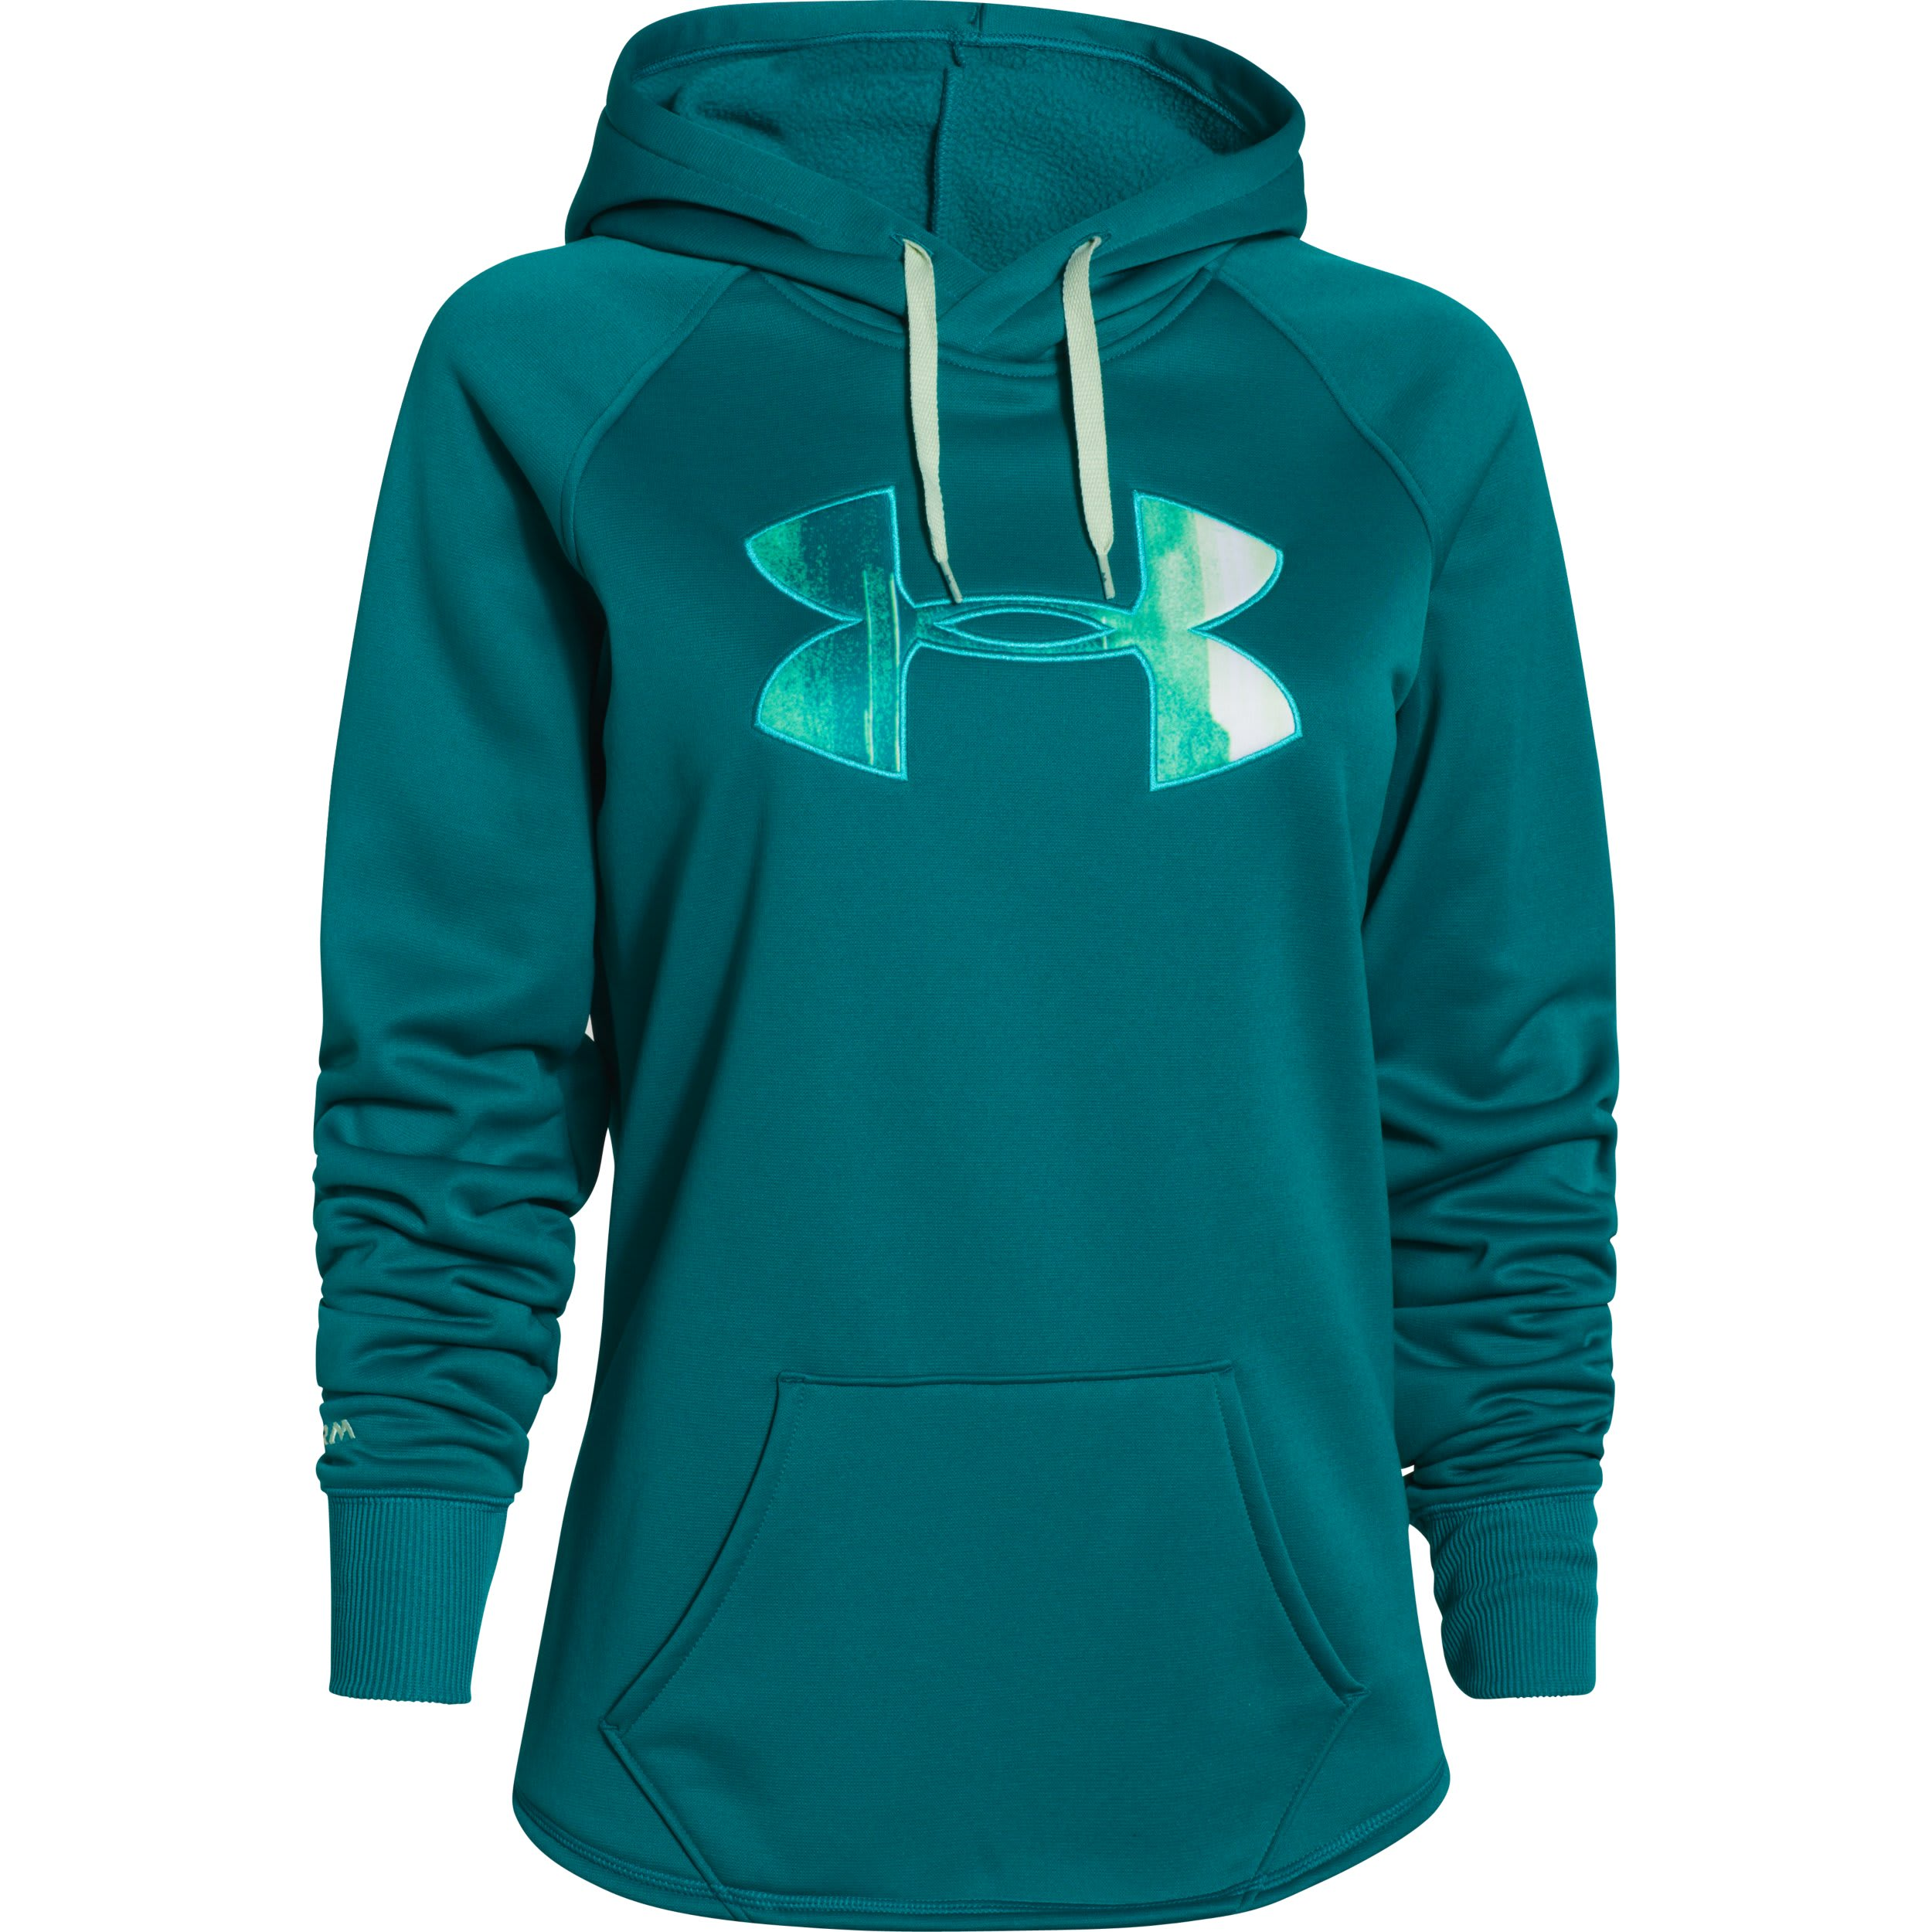 under armour sweater womens cheap   OFF53% The Largest Catalog Discounts c47a3f2df3